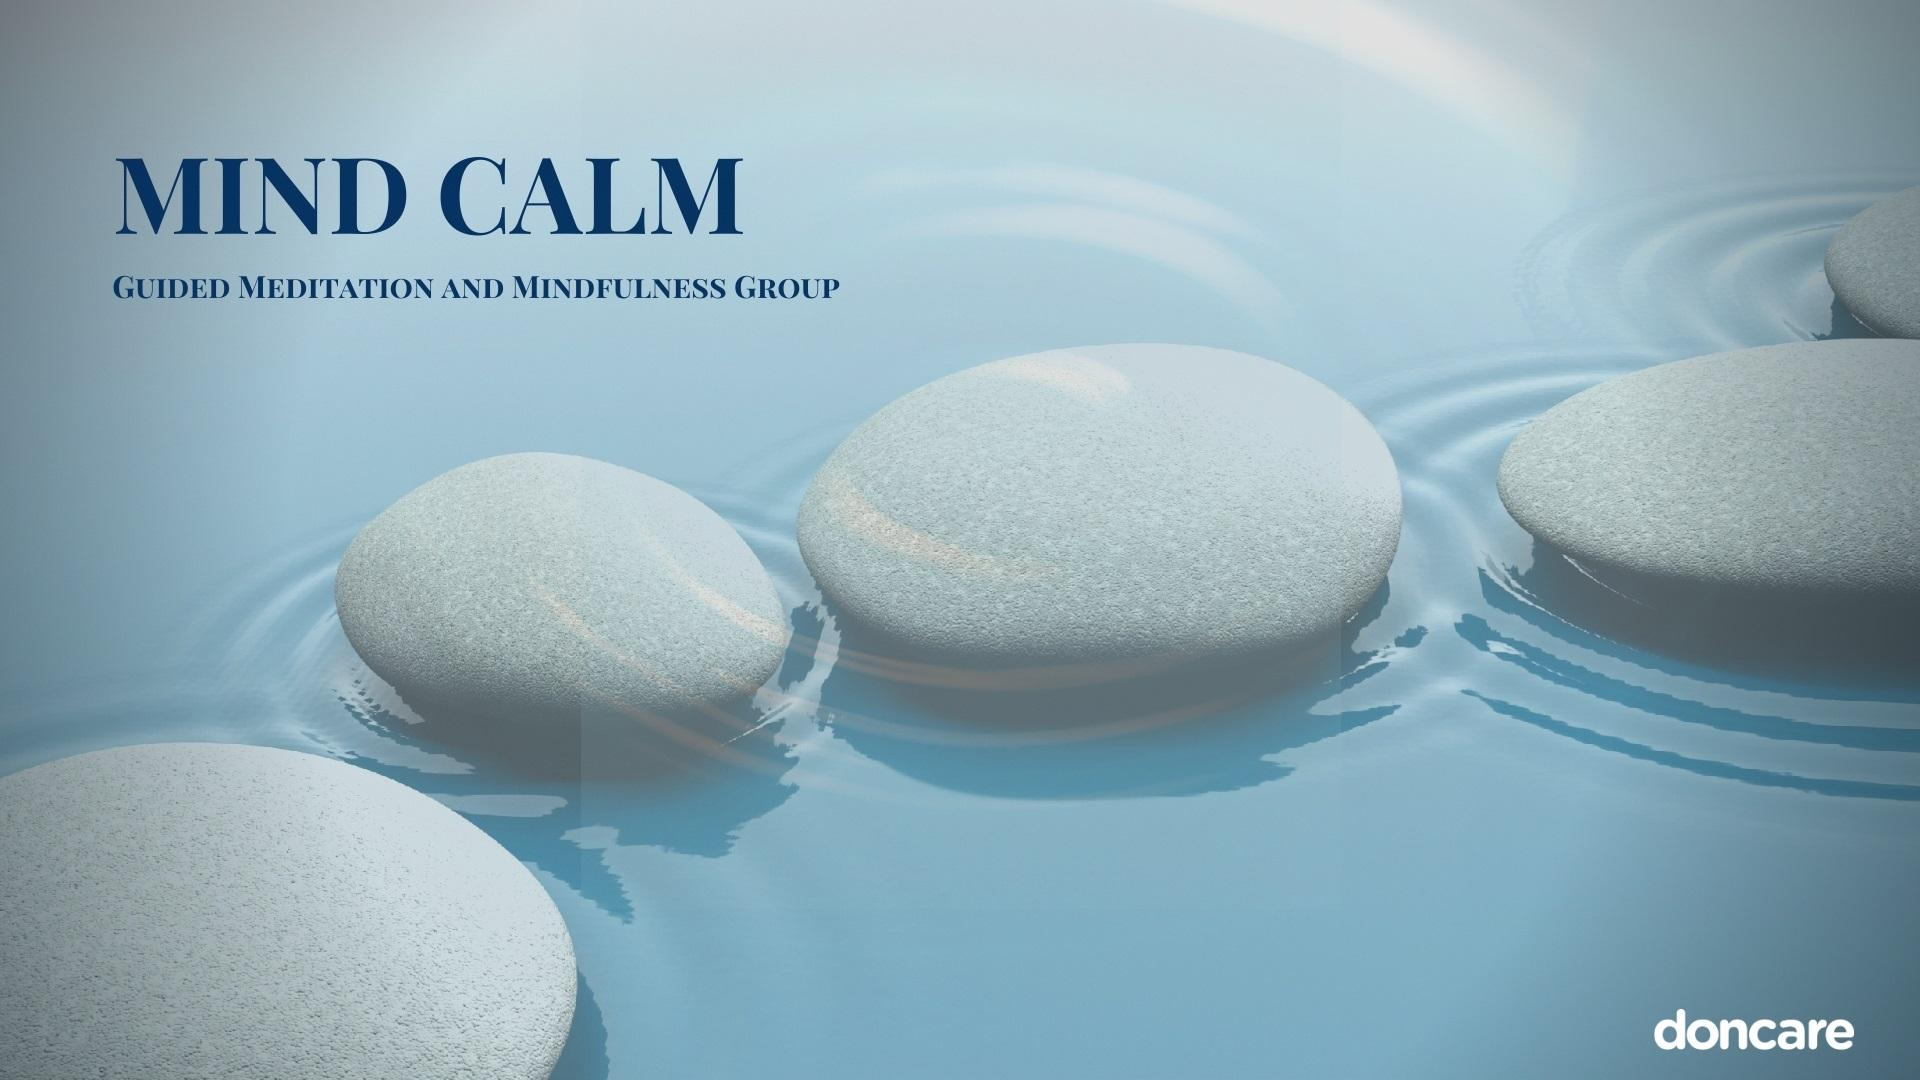 Pebbles sitting in water with Mind Calm text in left corner